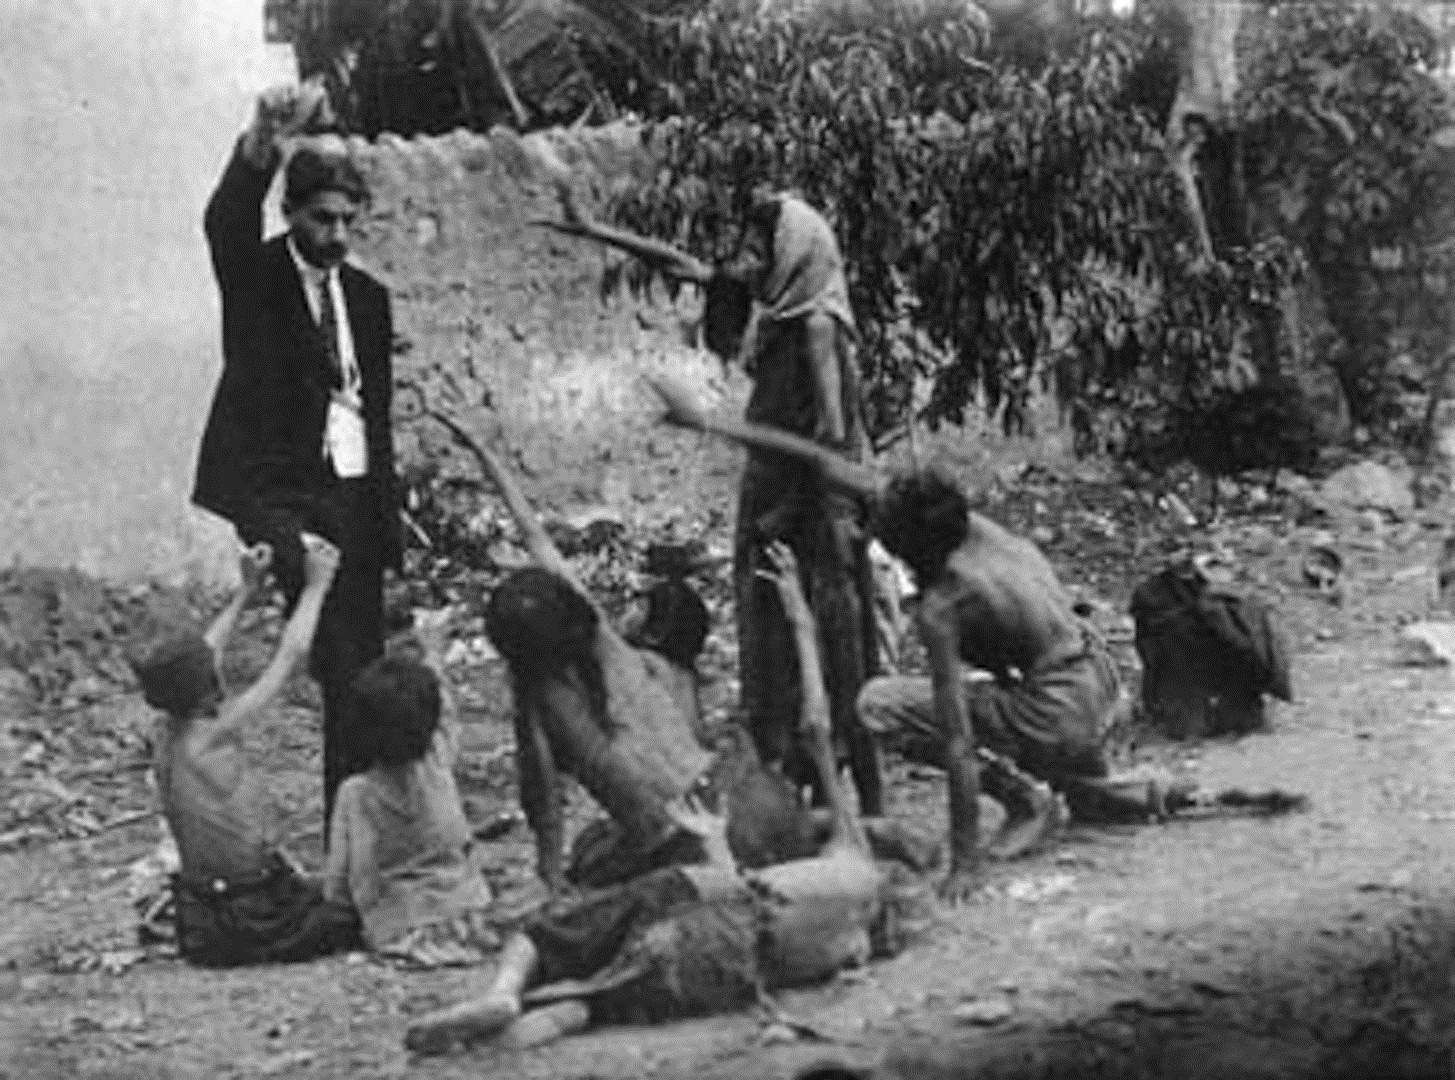 Turk official teasing Armenian starved children